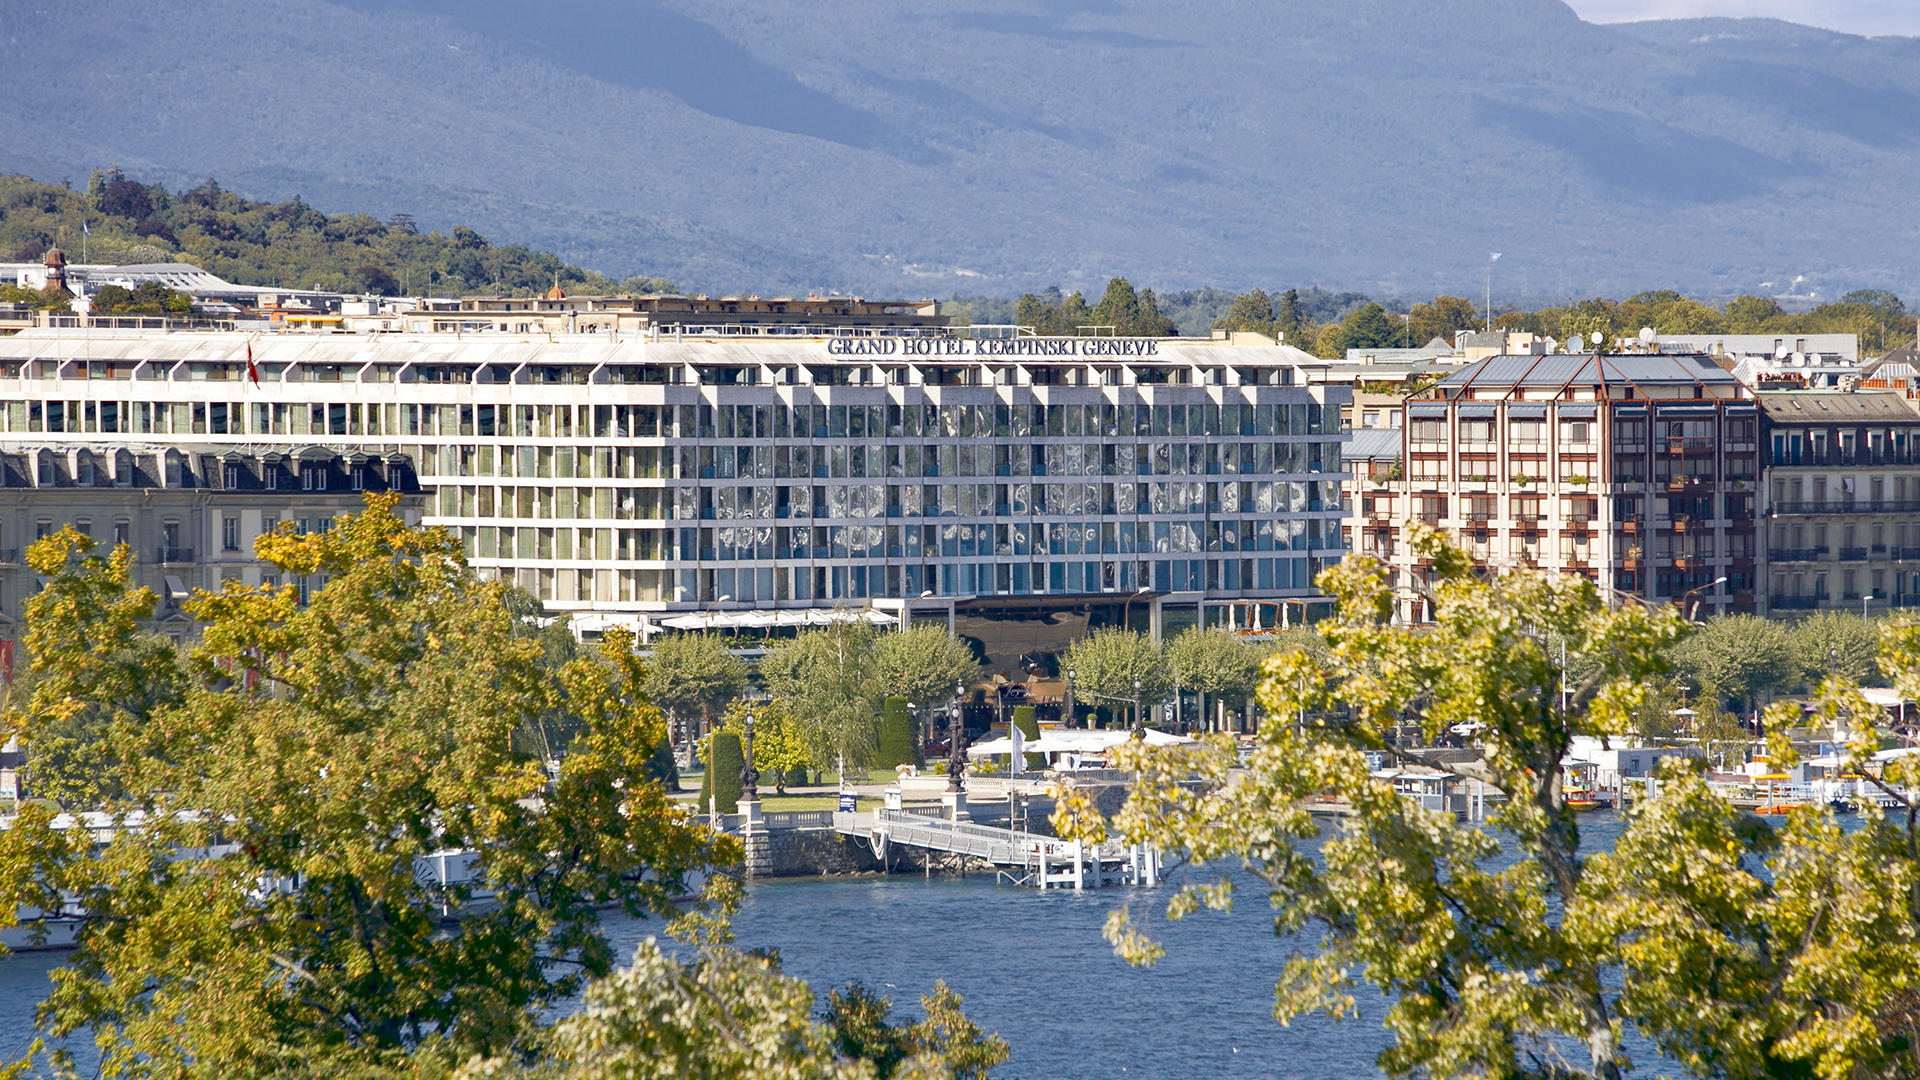 View to the Grand Hotel Kempinski Geneva